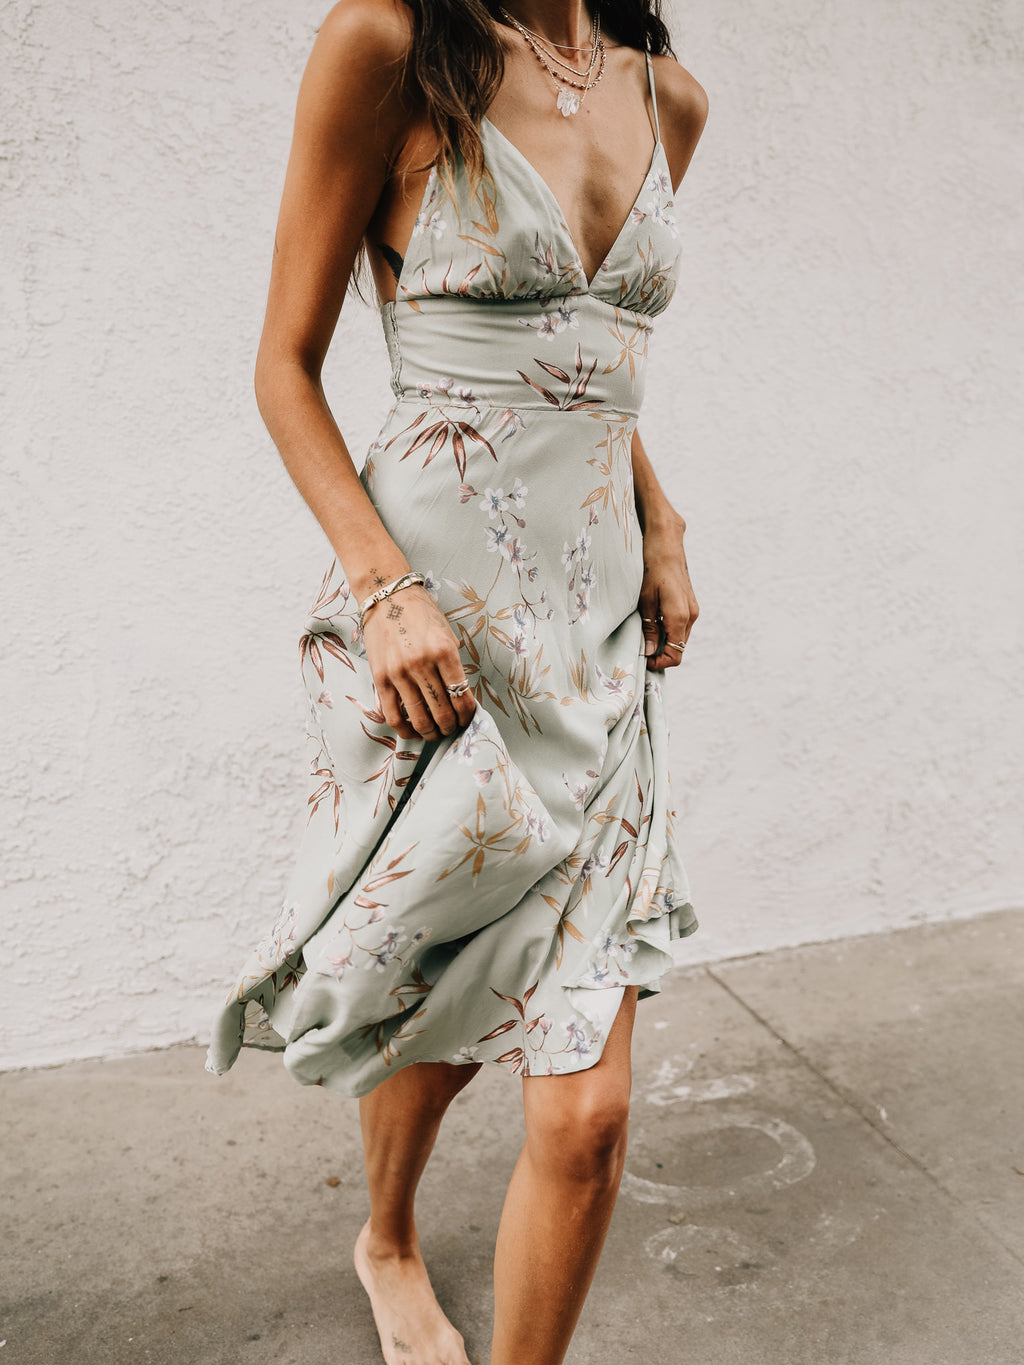 Parlor Palm Midi Dress in Sage - Stitch And Feather